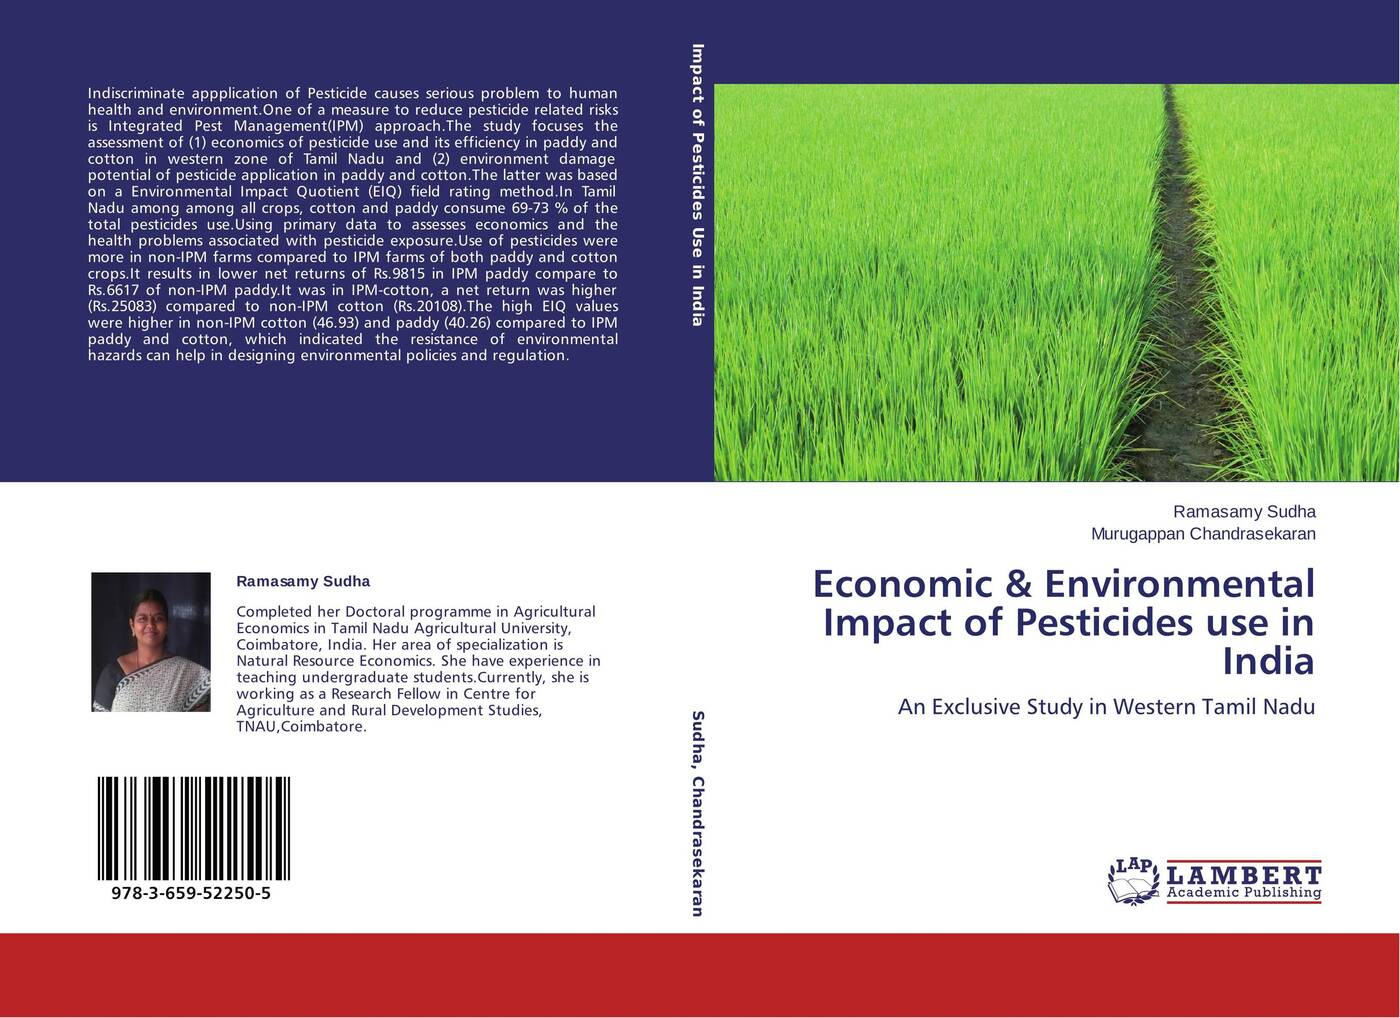 Ramasamy Sudha and Murugappan Chandrasekaran Economic & Environmental Impact of Pesticides use in India